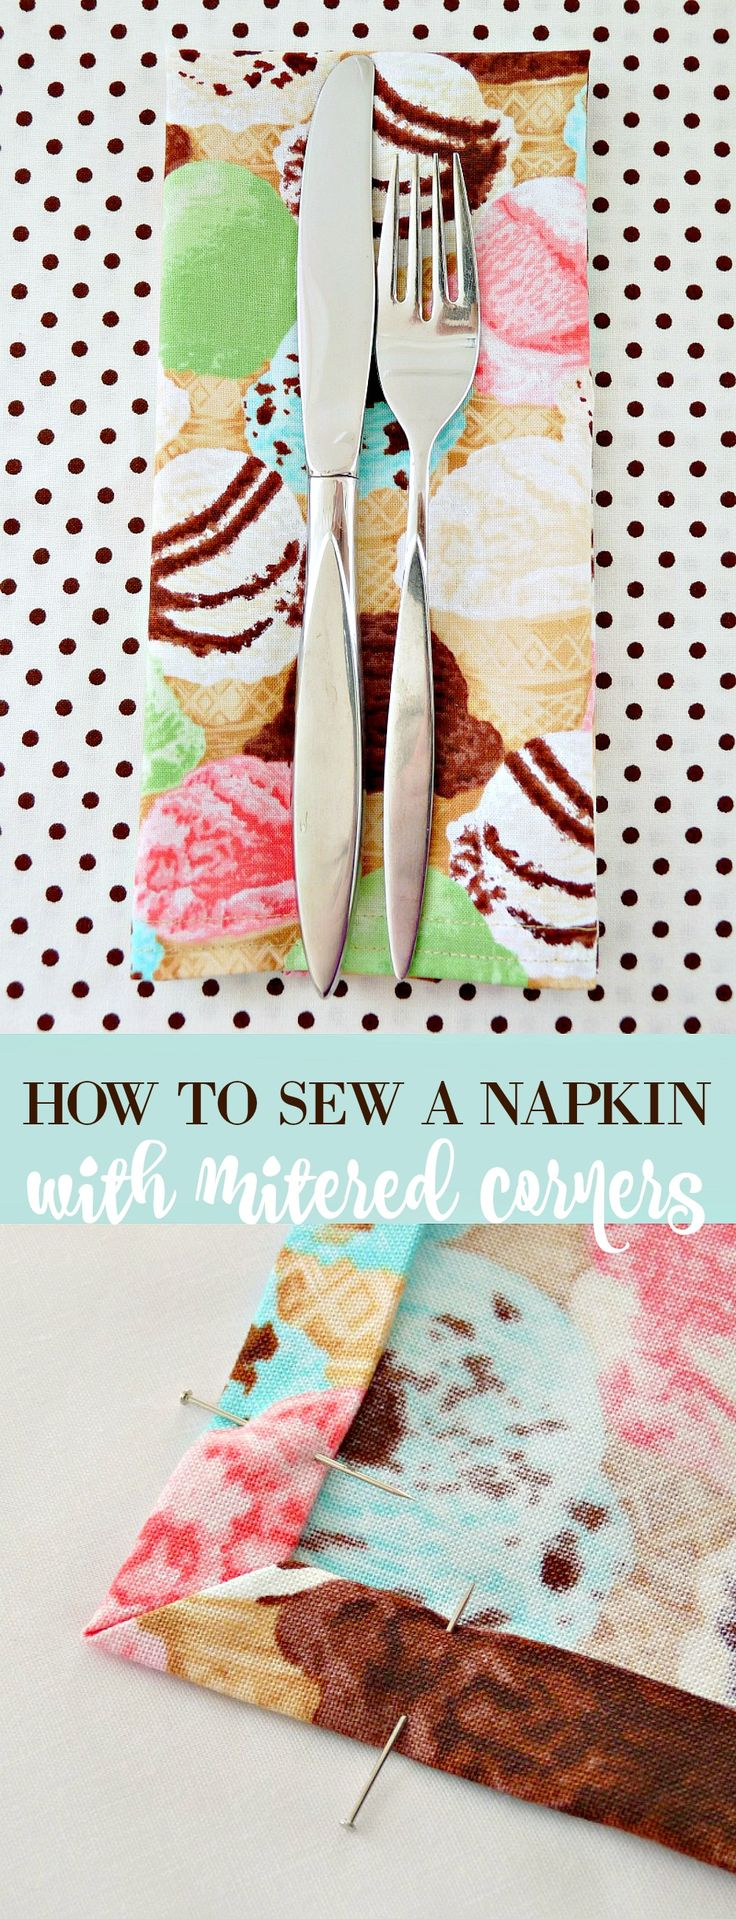 DIY Cloth Napkins and Tea Towels with Mitered Corners - GREAT TUTORIAL with step-by-step photos and clear instructions // Sewing tutorial // How to sew mitered corners // Summer craft ideas